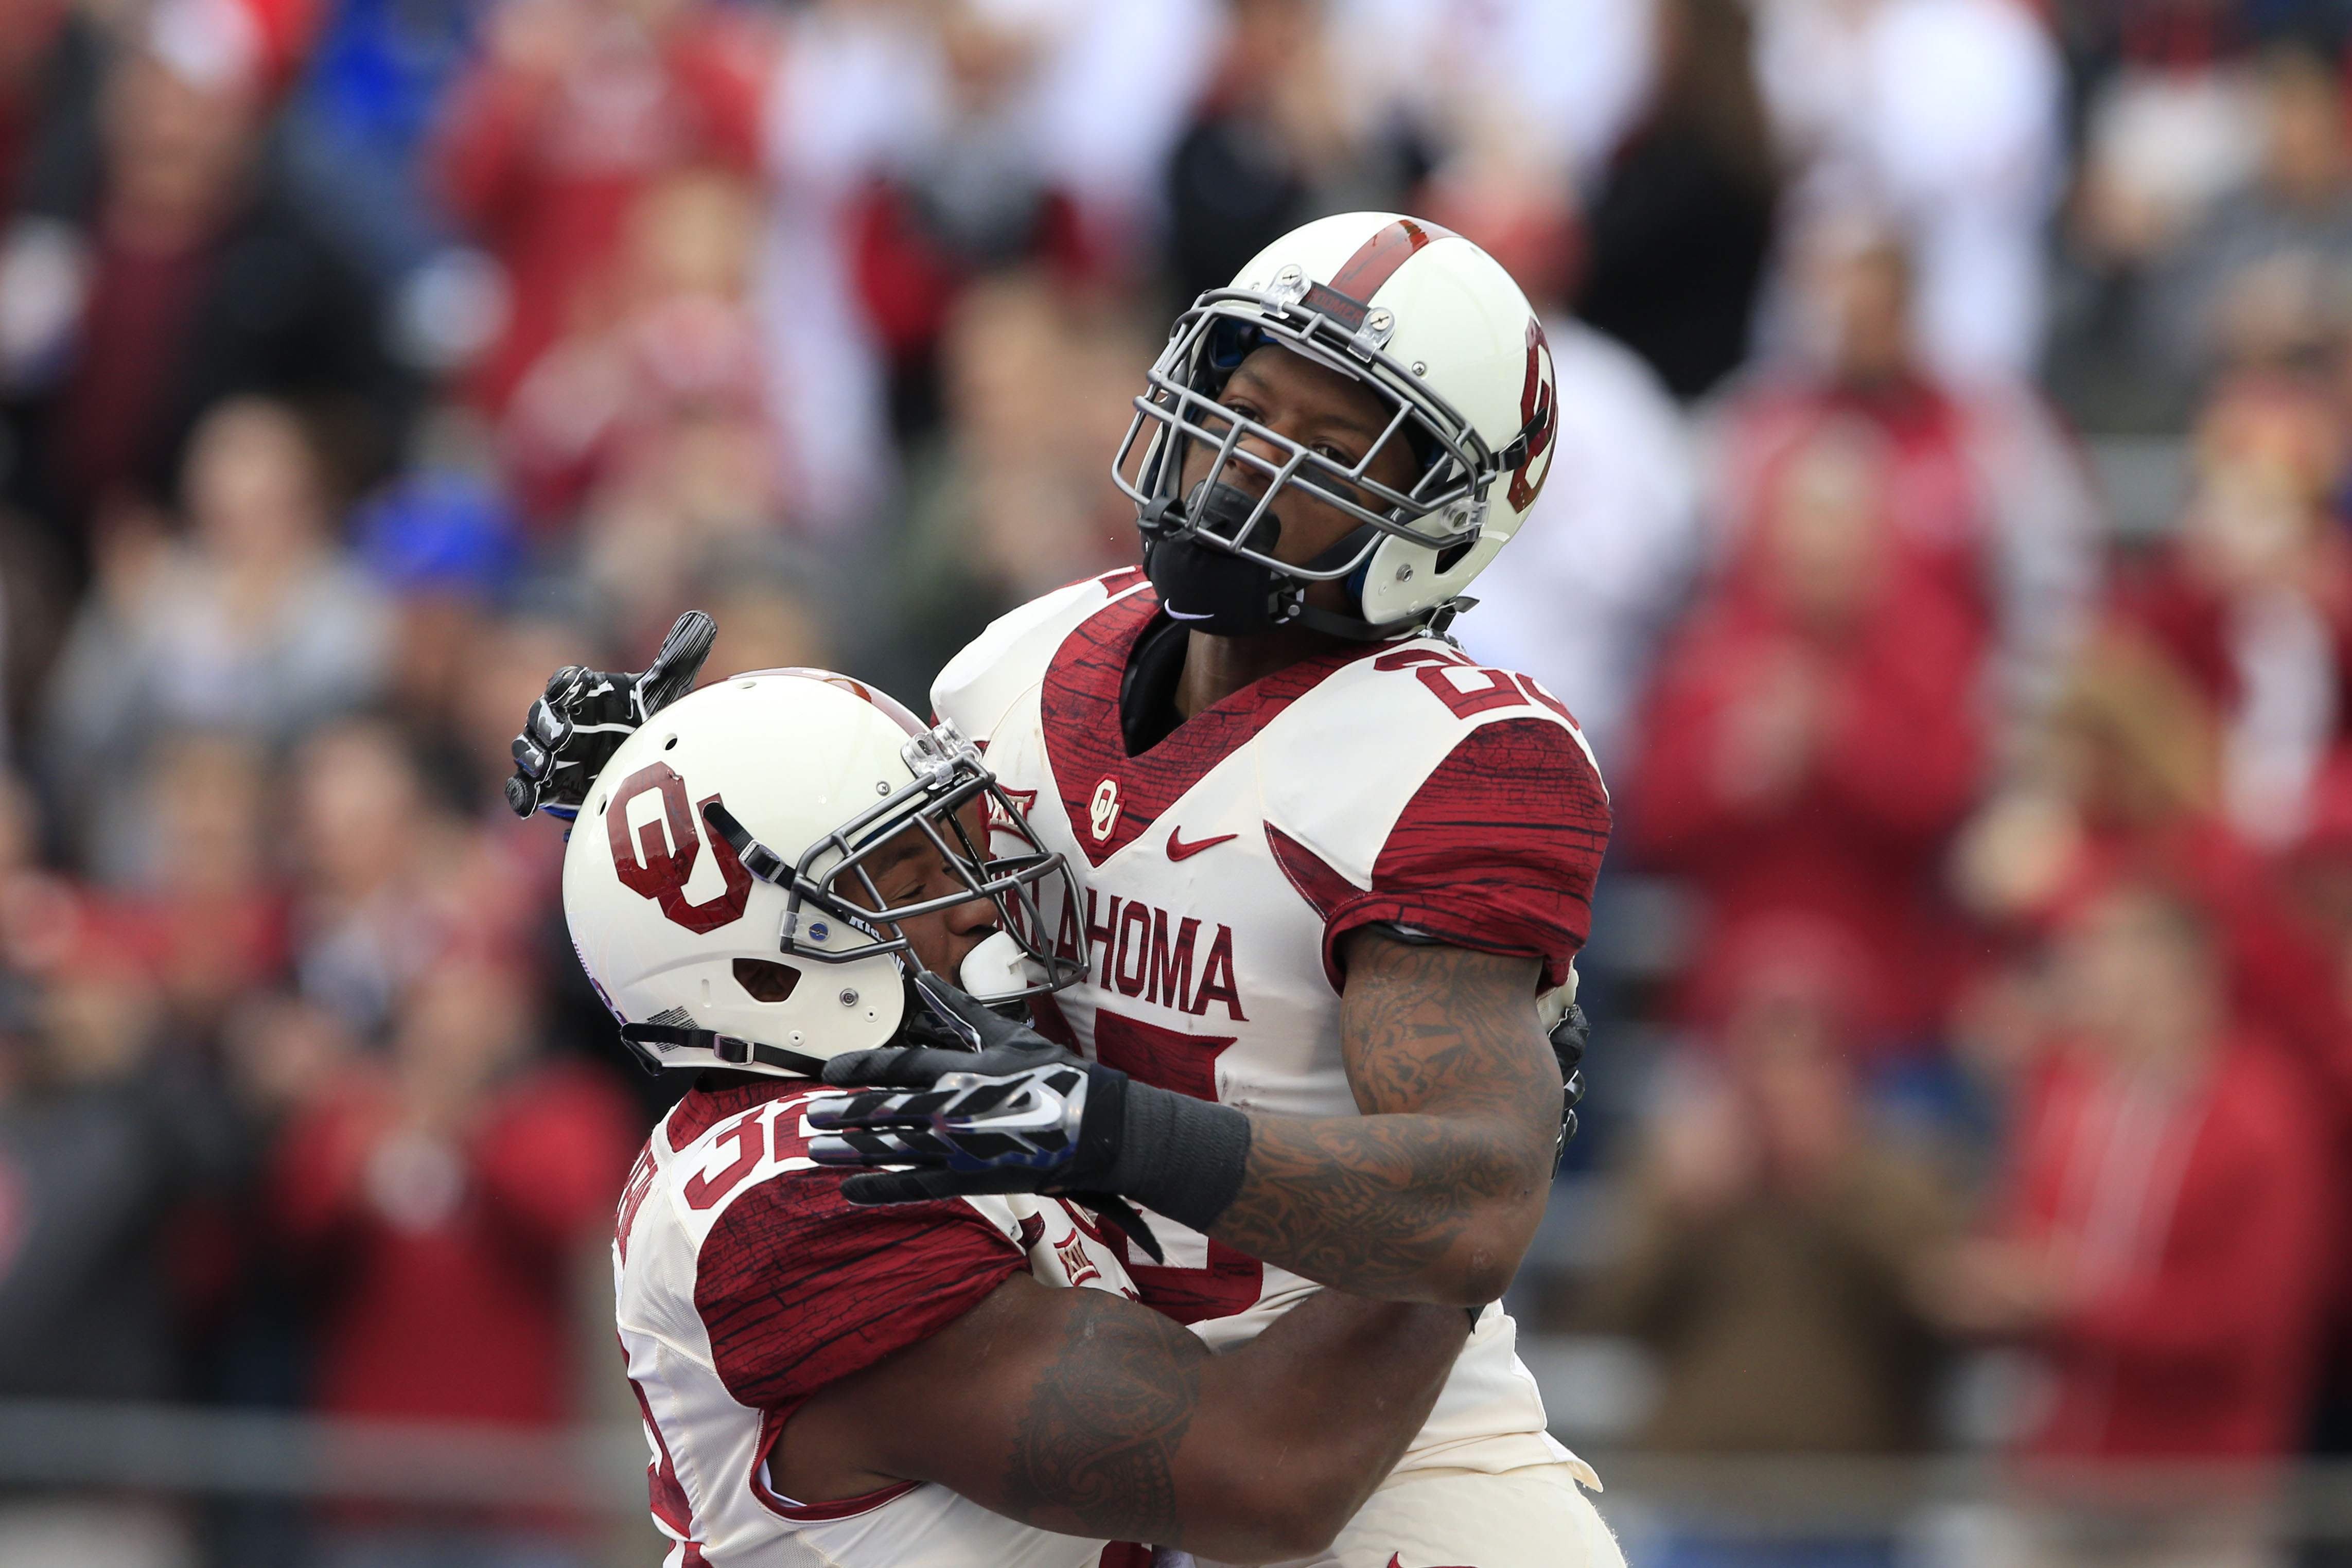 FILE- In this Oct. 31, 2015, file photo, Oklahoma running backs Joe Mixon, right, and Samaje Perine (32) celebrate during the first half of an NCAA college football game against Kansas in Lawrence, Kan. There are several different running combos in the Bi